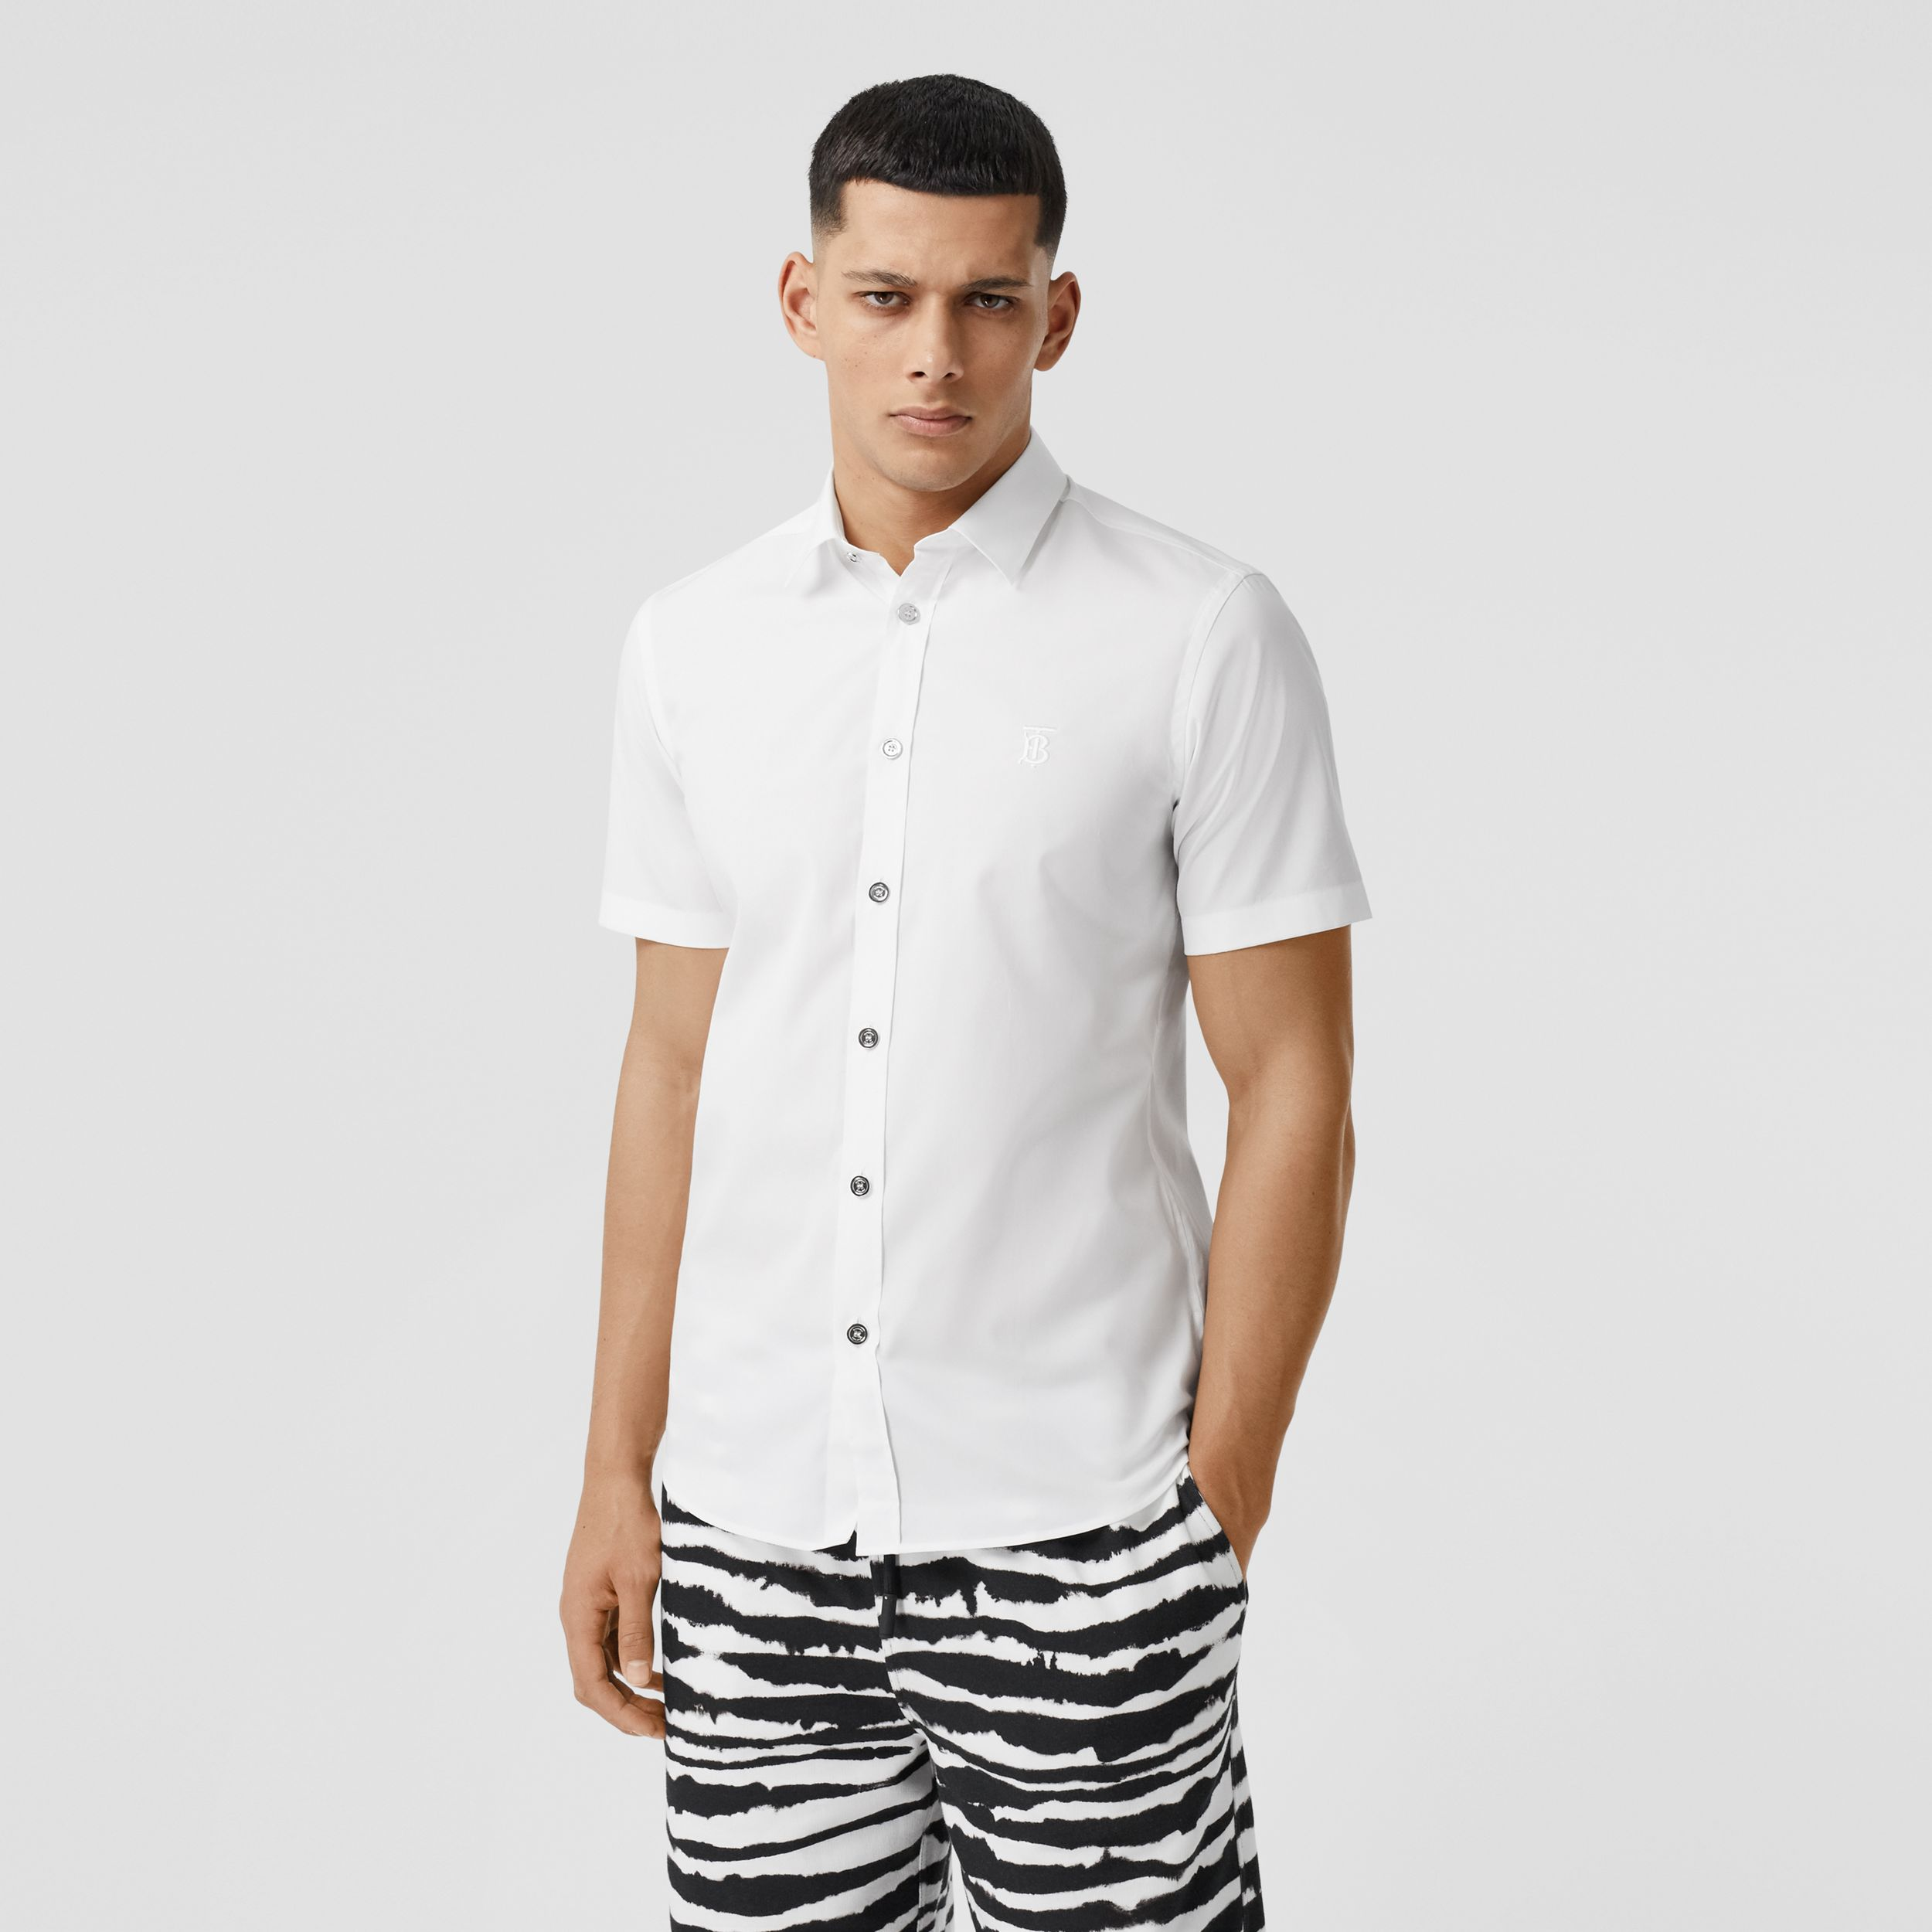 Short-sleeve Monogram Motif Stretch Cotton Shirt in White - Men | Burberry Australia - 1